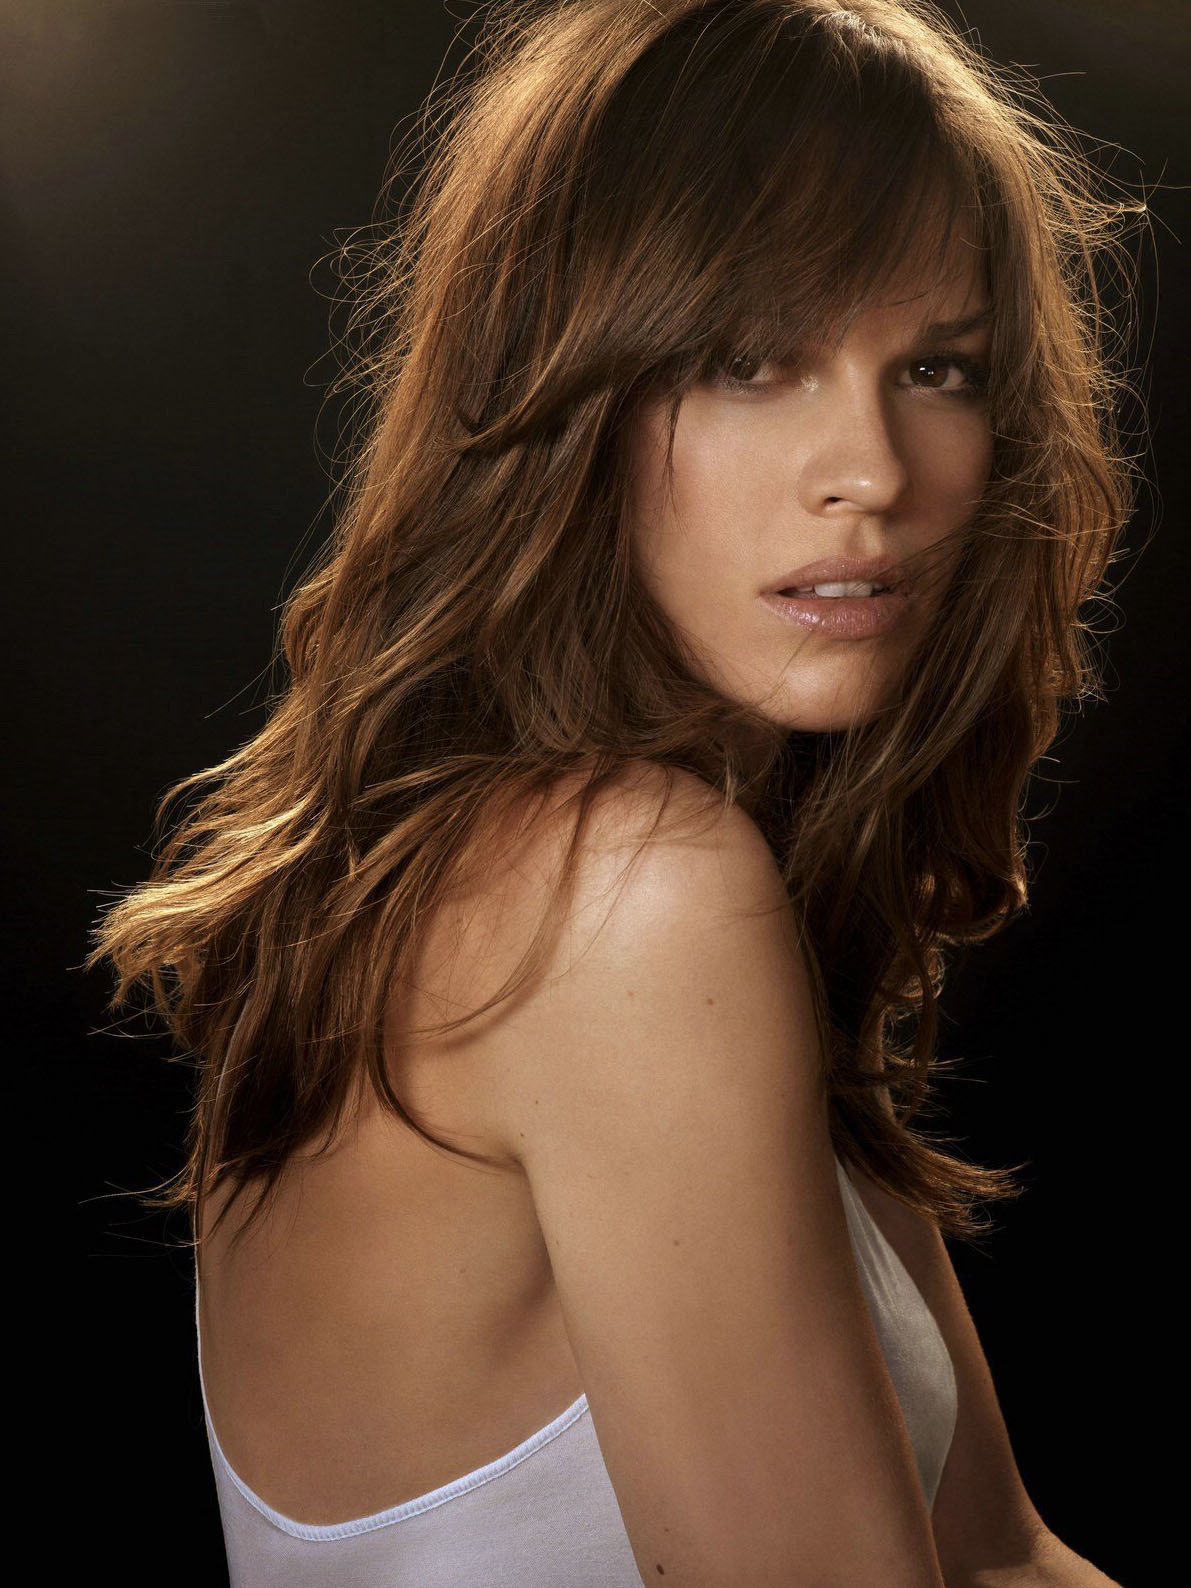 Hilary Swank - Actresses Photo (8311440) - Fanpop